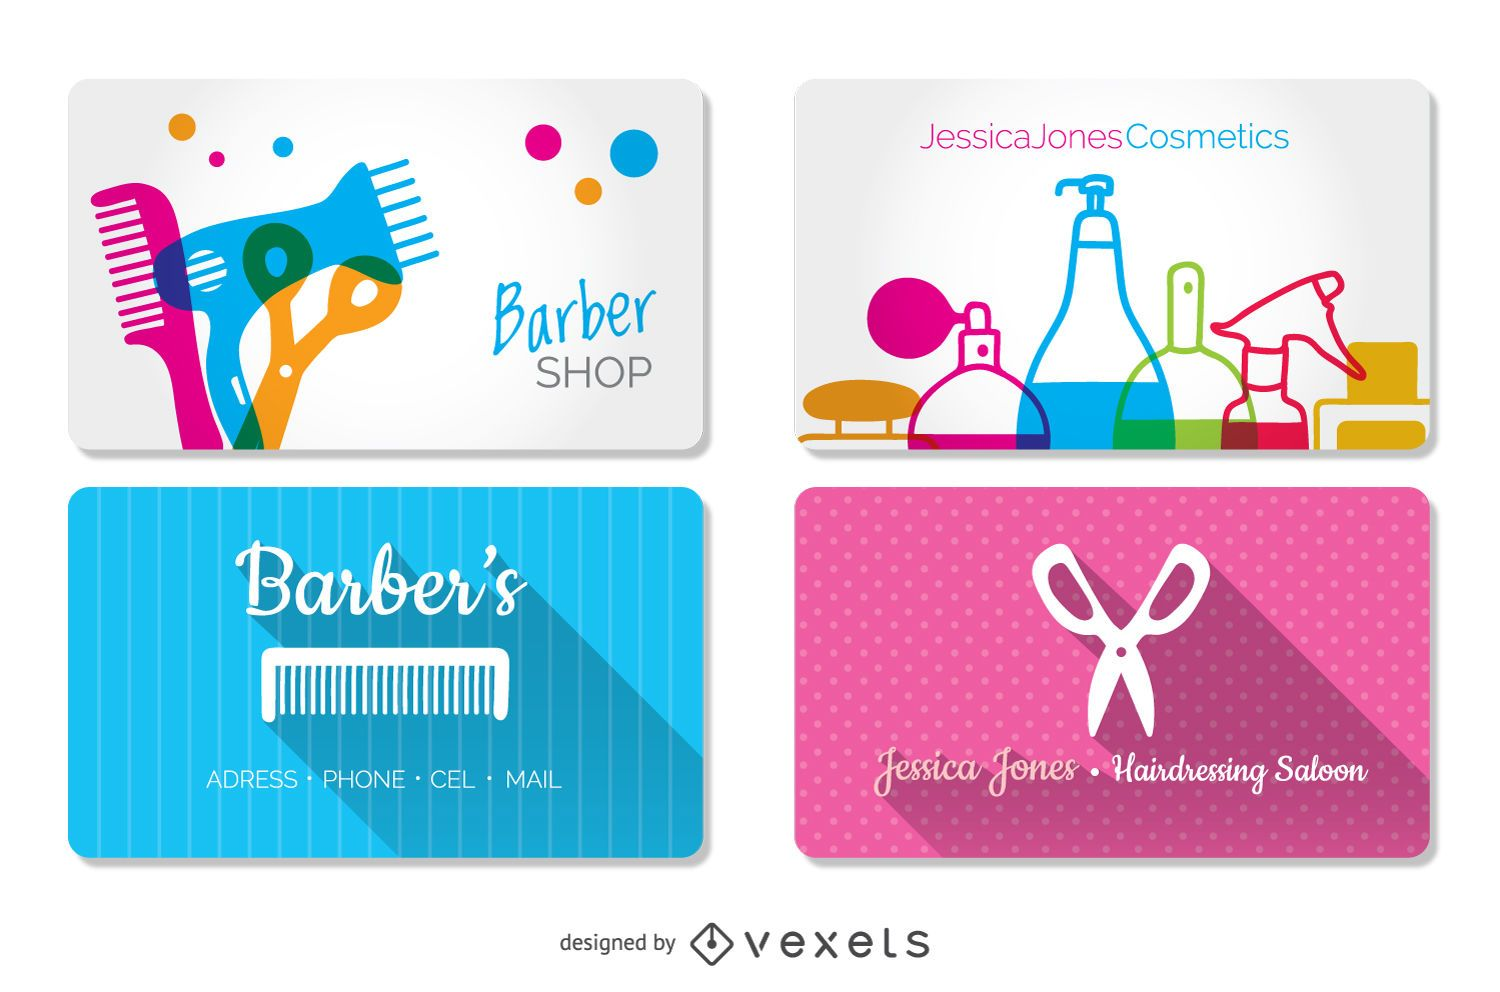 Hairdressing and barber shop business cards templates vector download hairdressing and barber shop business cards templates download large image 1500x992px license image user colourmoves